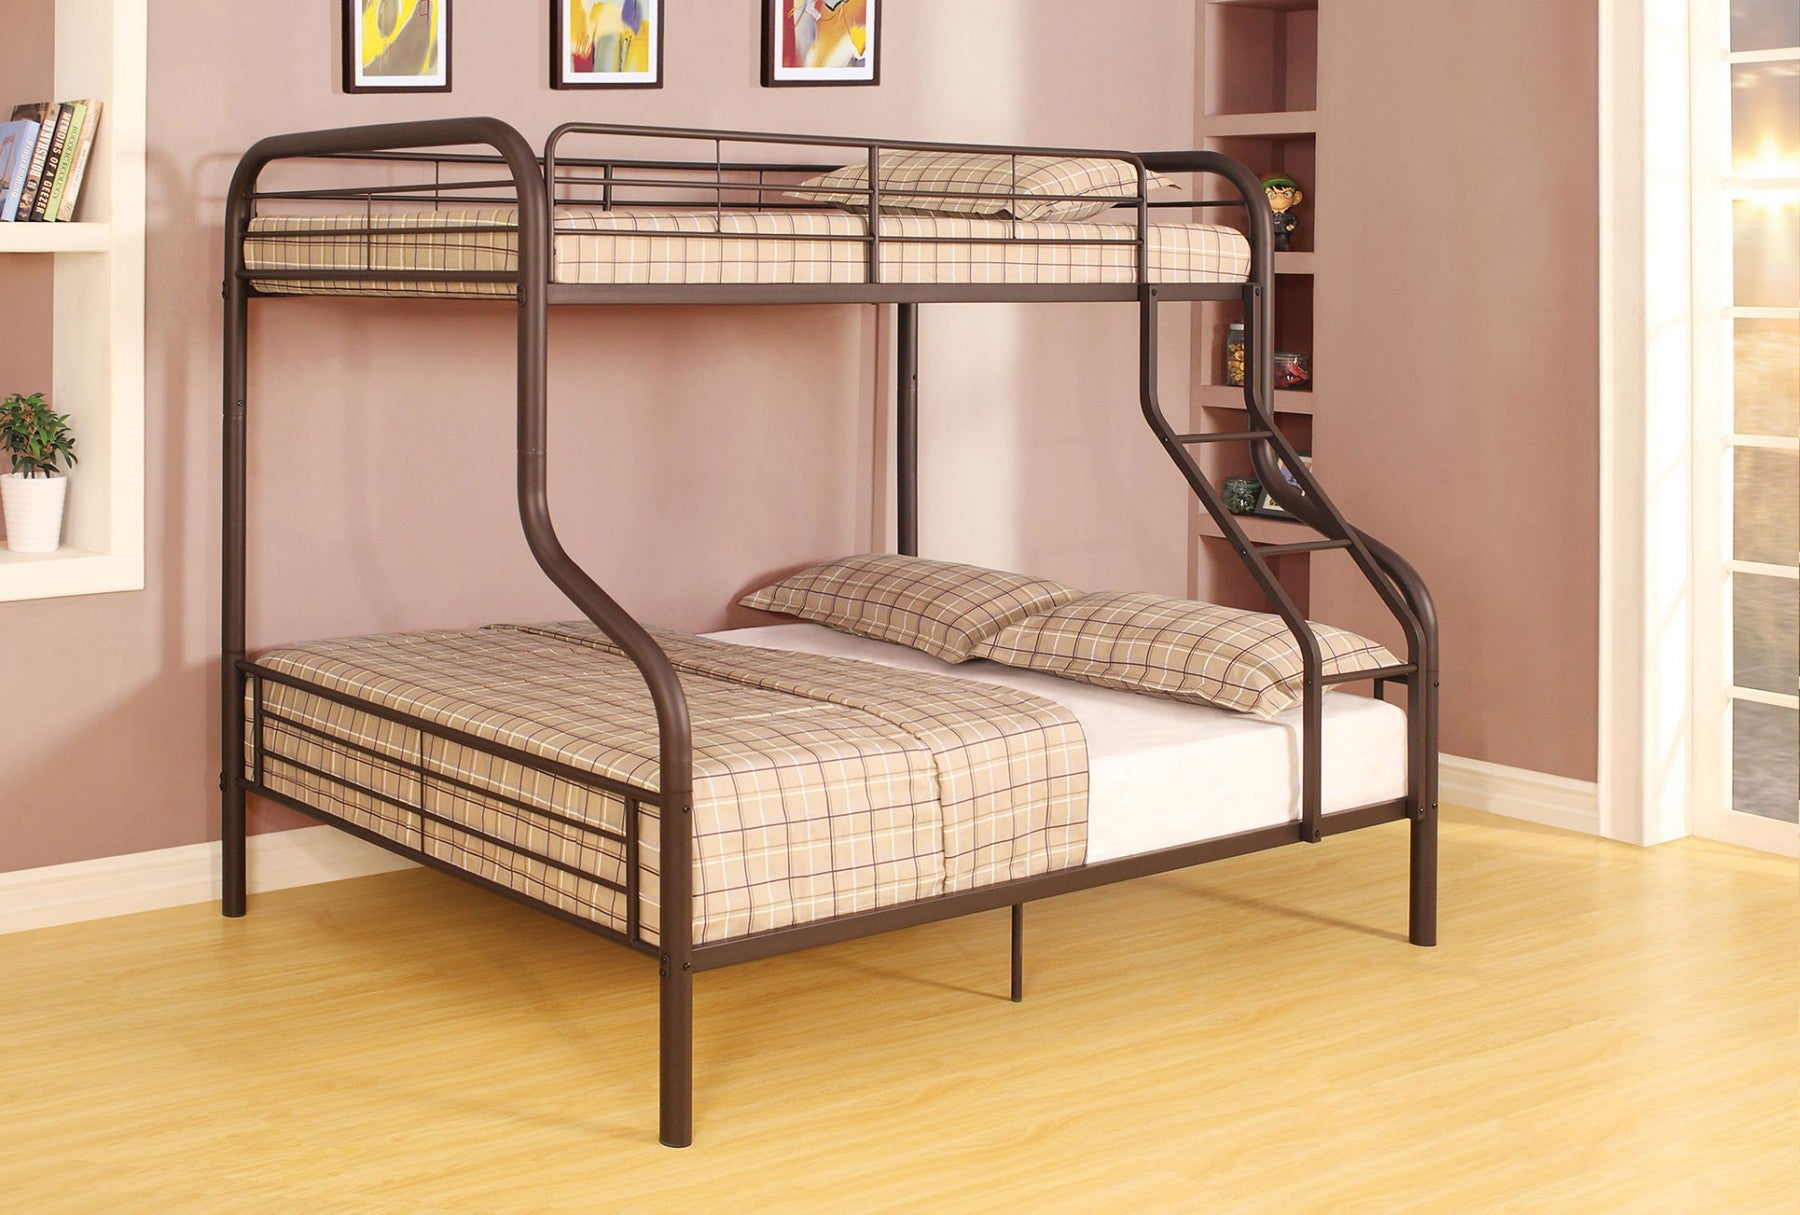 CAIRO TWIN/FULL BUNK BED /37610